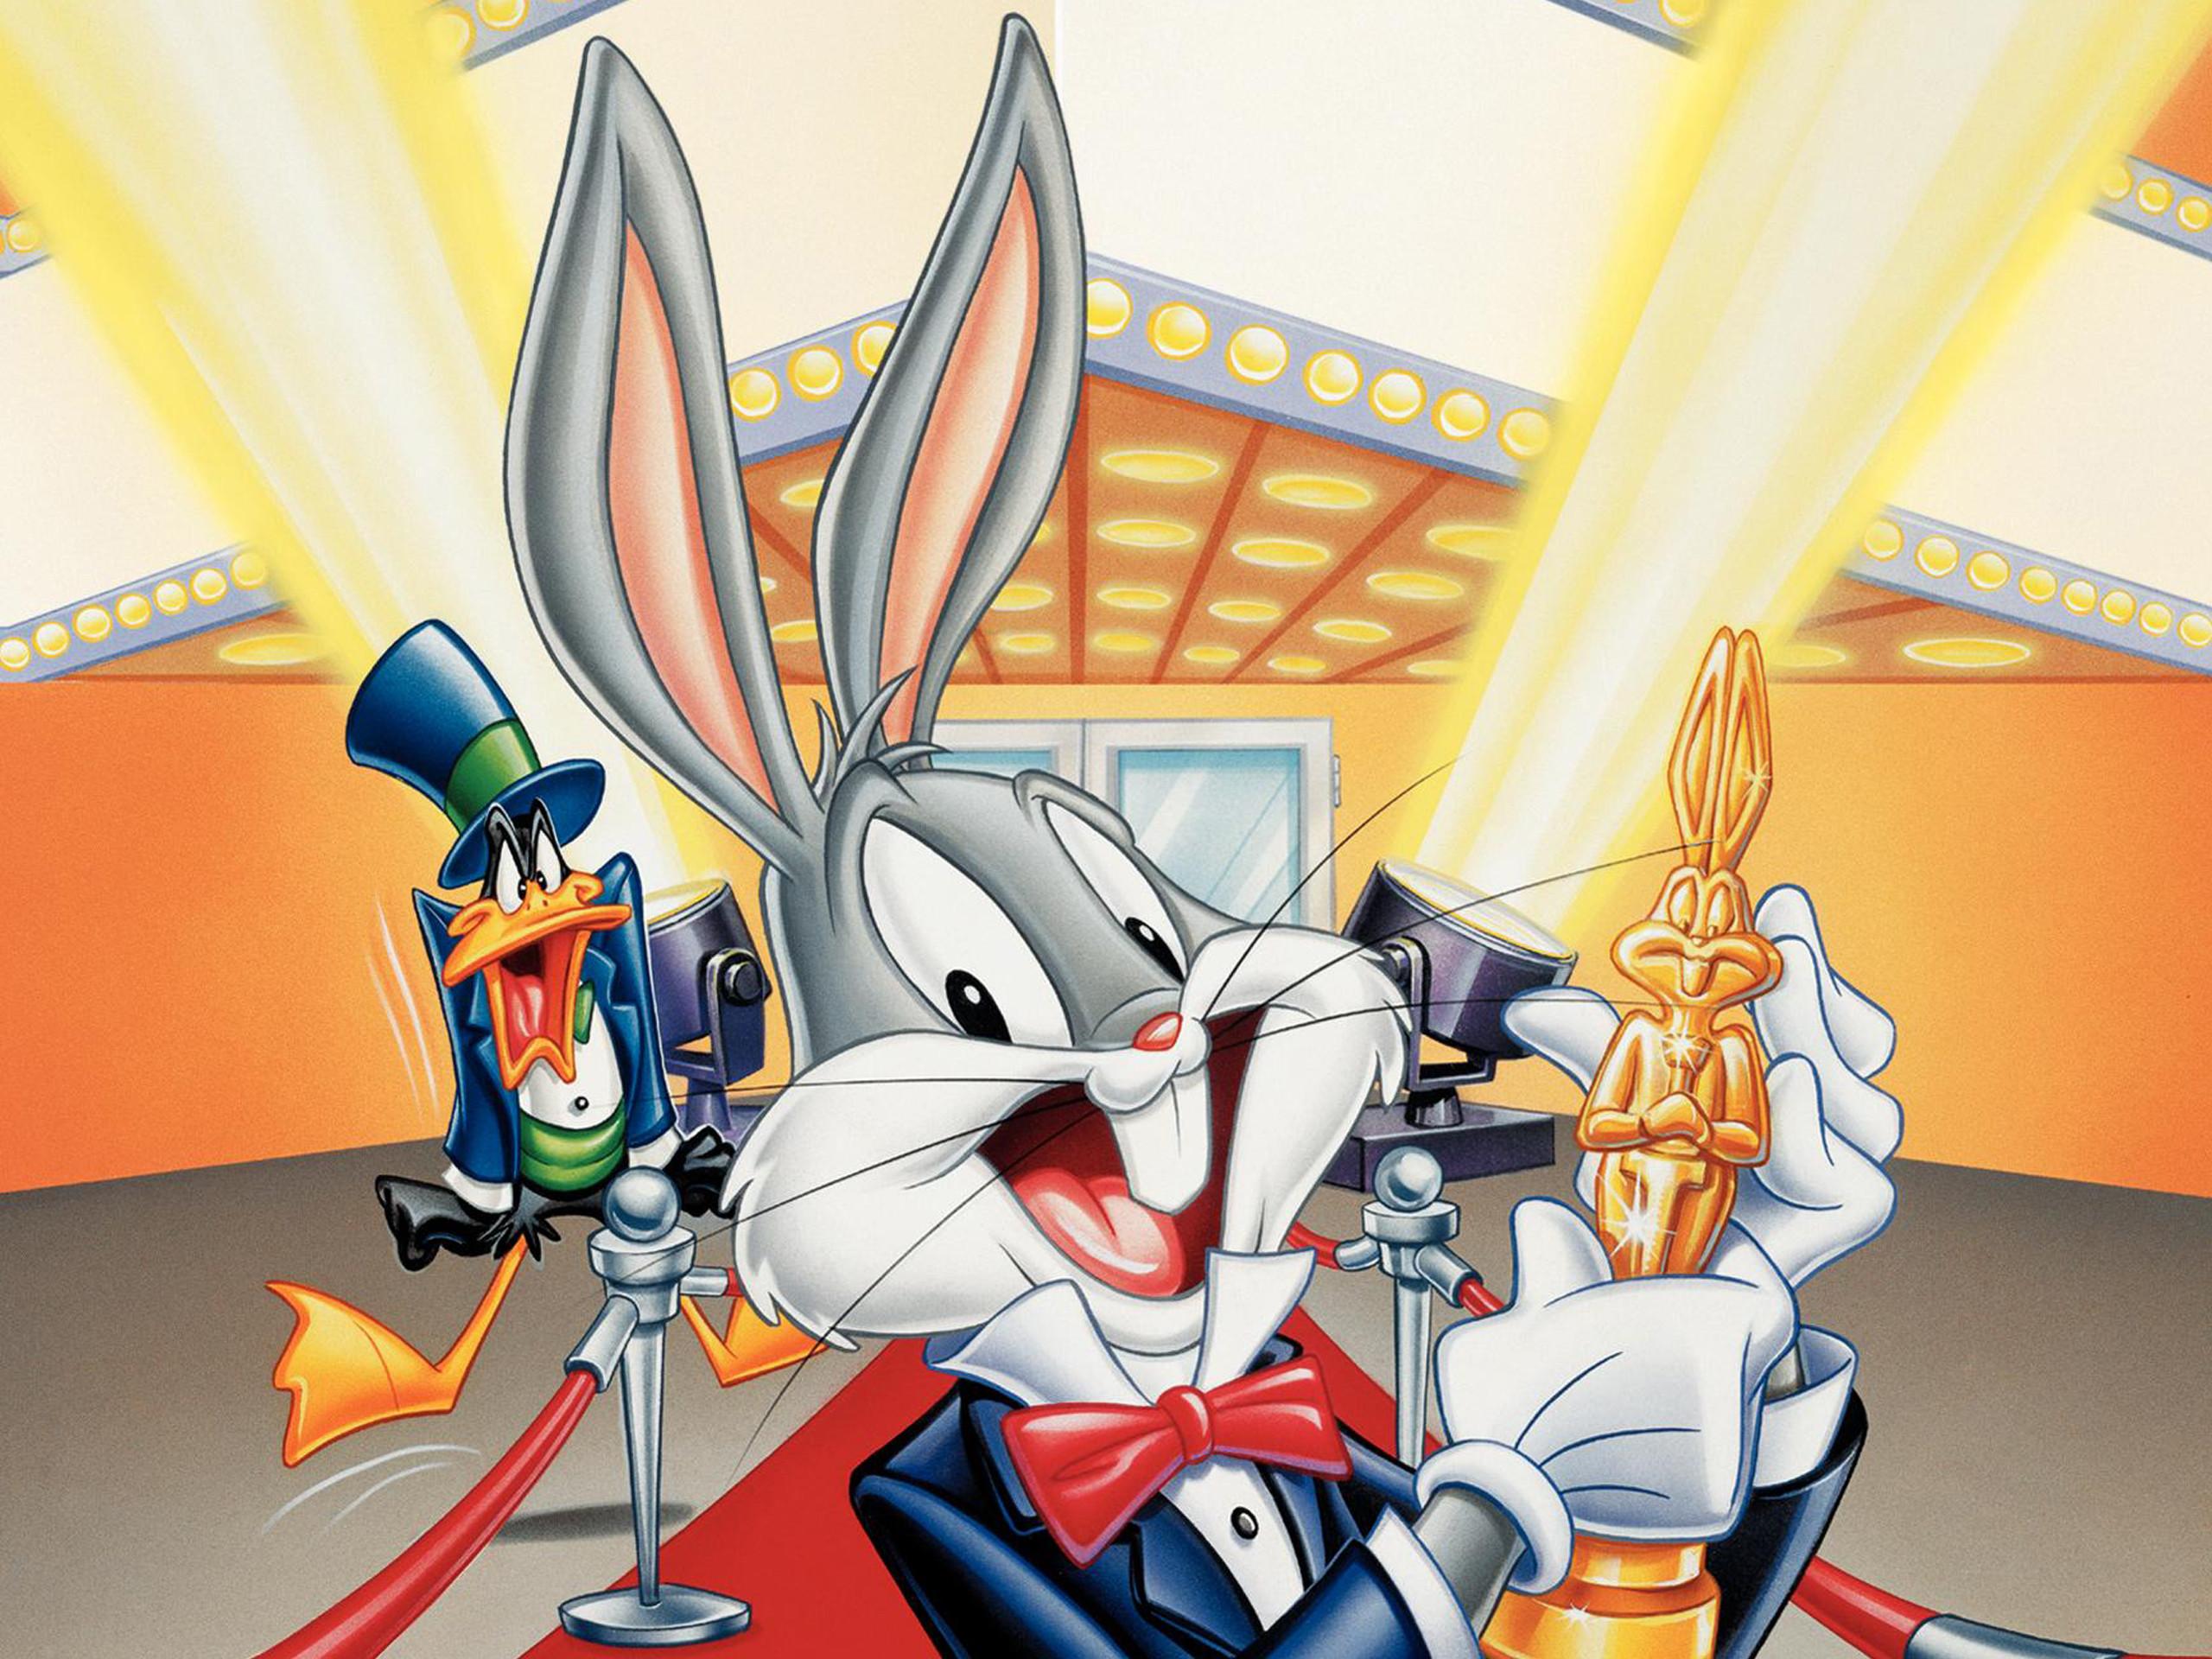 Res: 2560x1920, Bugs Bunny Wallpaper 19445